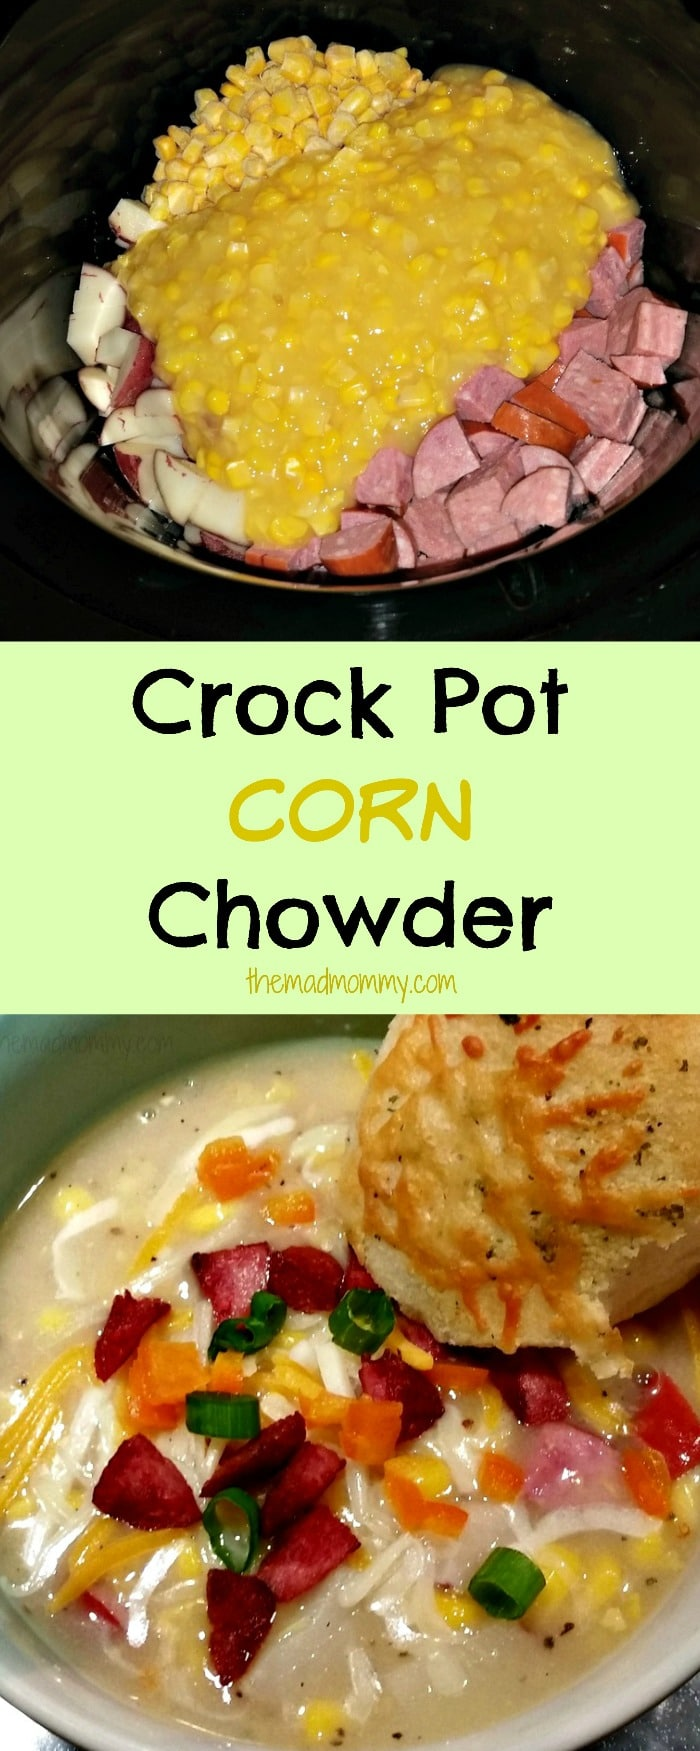 crock pot corn chowder recipe themadmommy.com